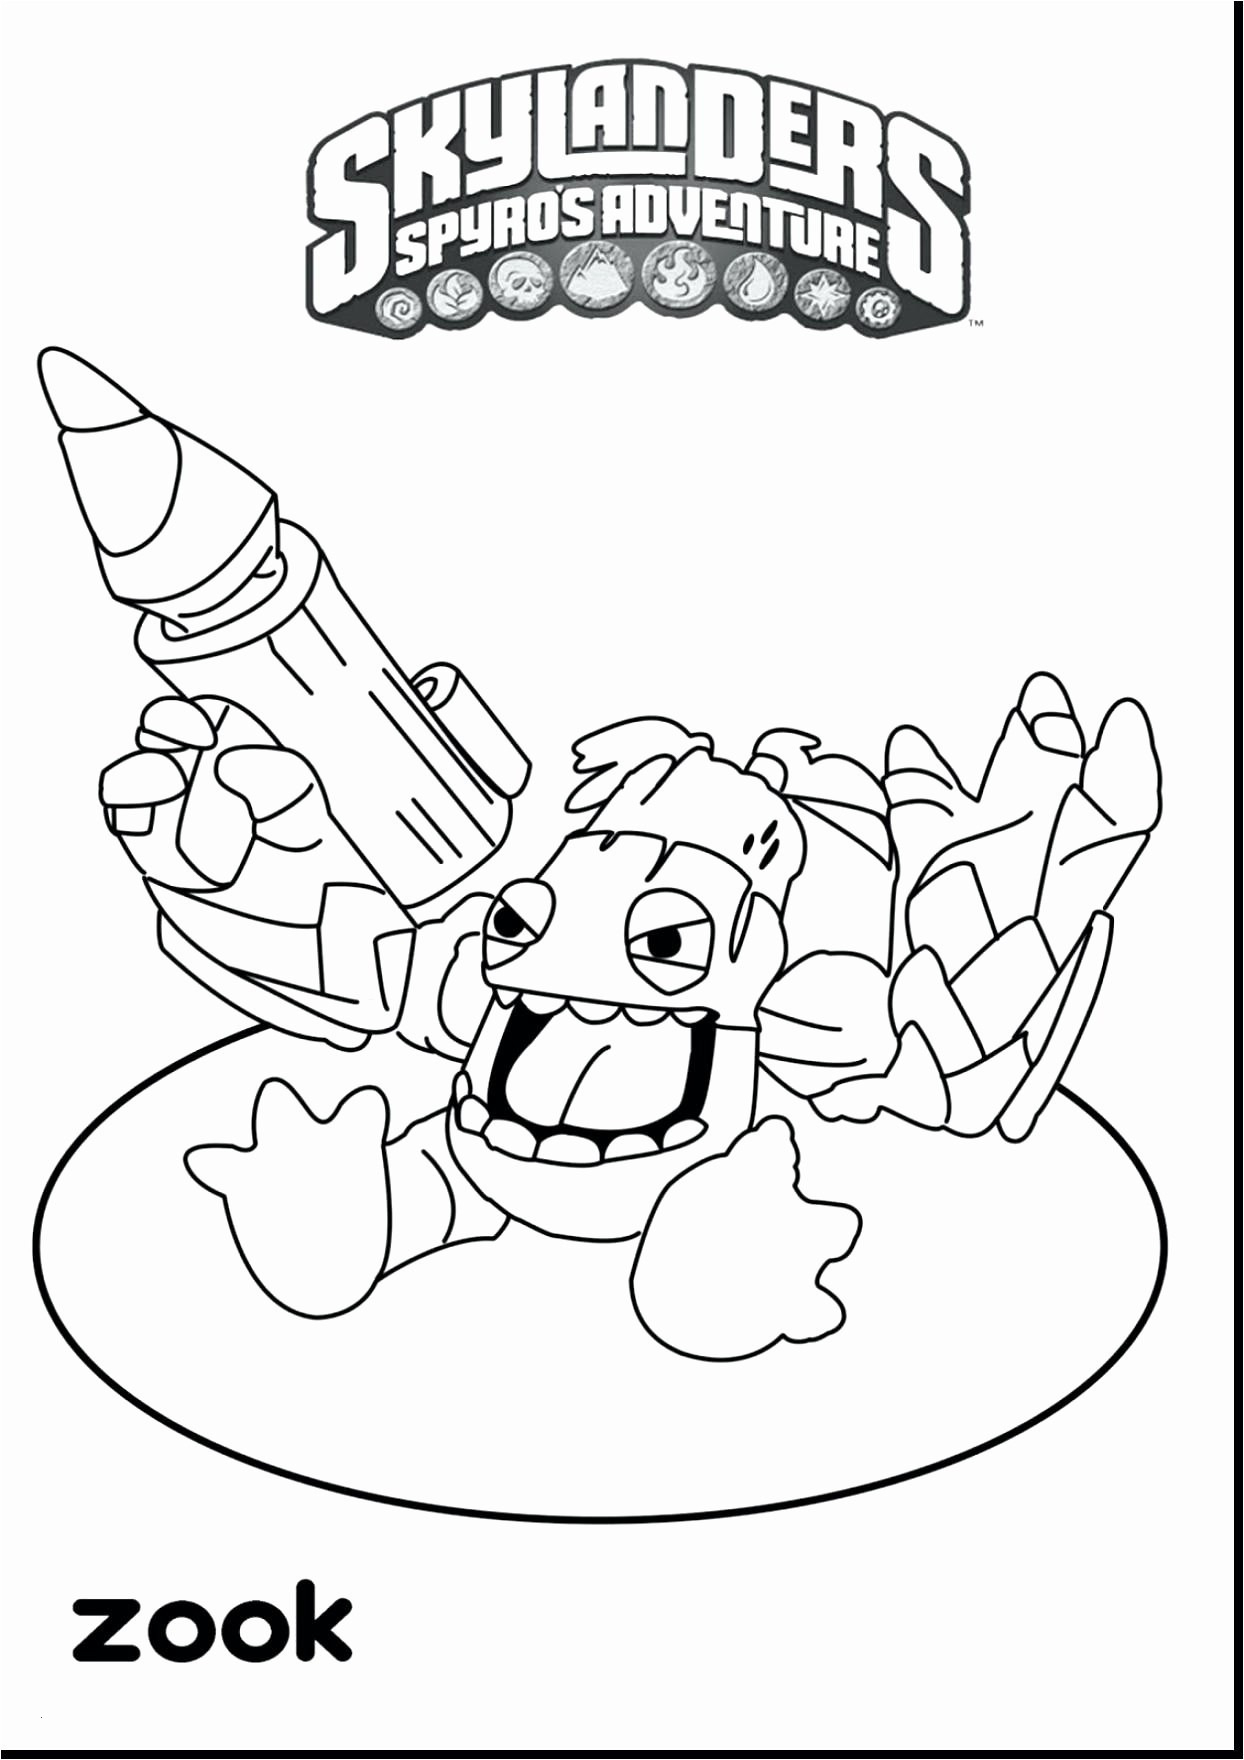 19 Easter Egg Coloring Pages For Toddlers Collection Coloring Sheets